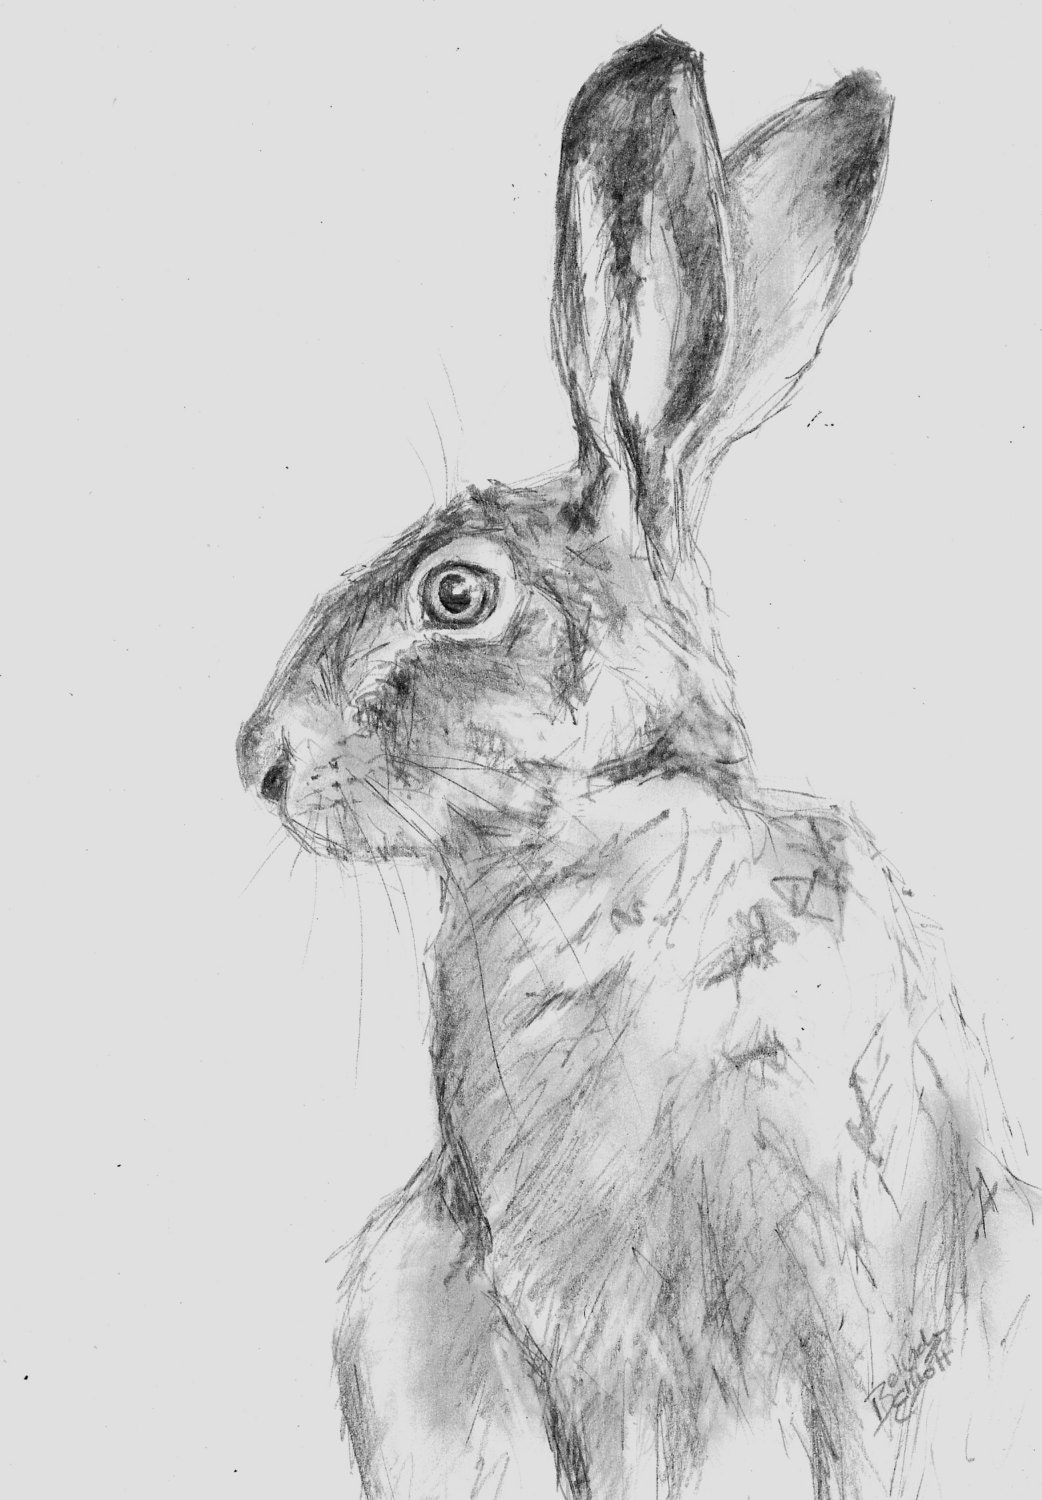 pencil animal drawing wildlife hare drawings a4 sketches animals artist elliott belinda bee etsy sketch draw sketching charcoal pastel study